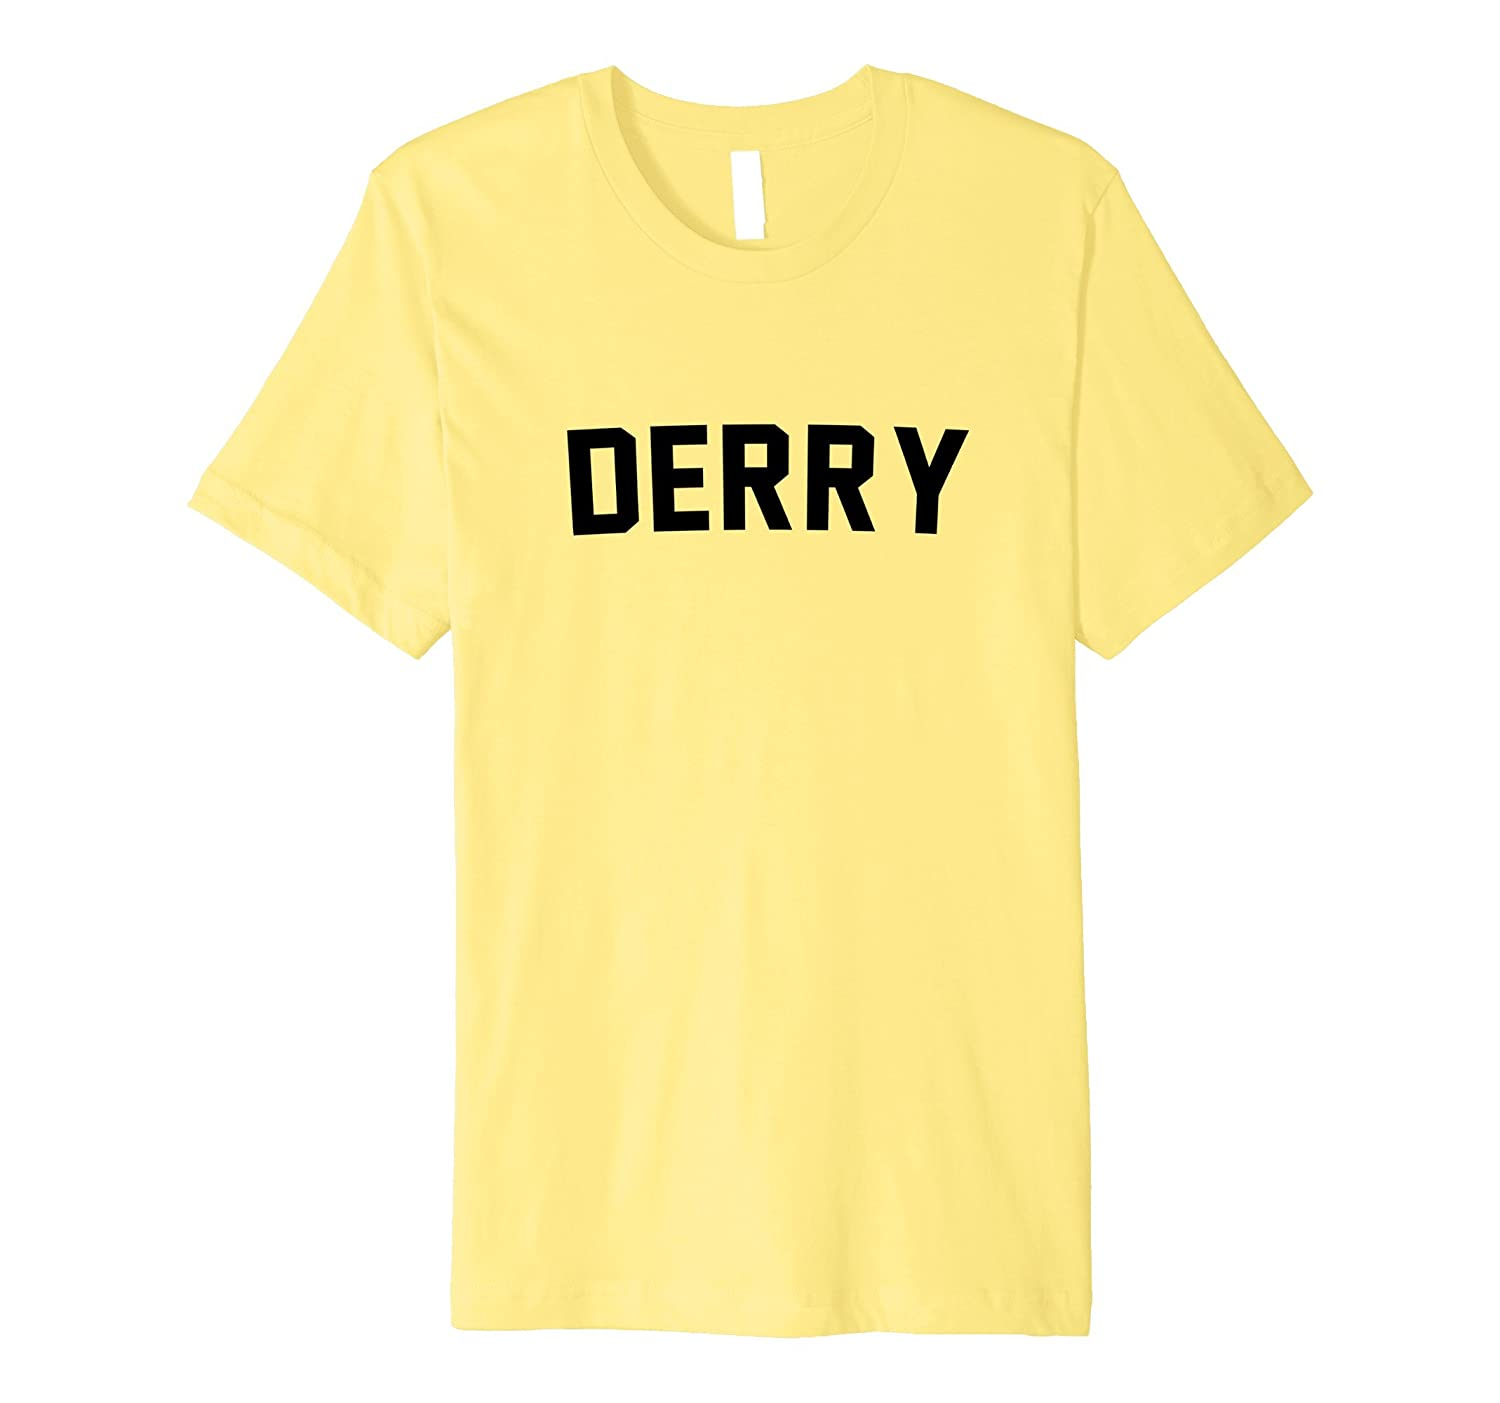 Derry Maine Premium Shirt for Horror Movies-FL